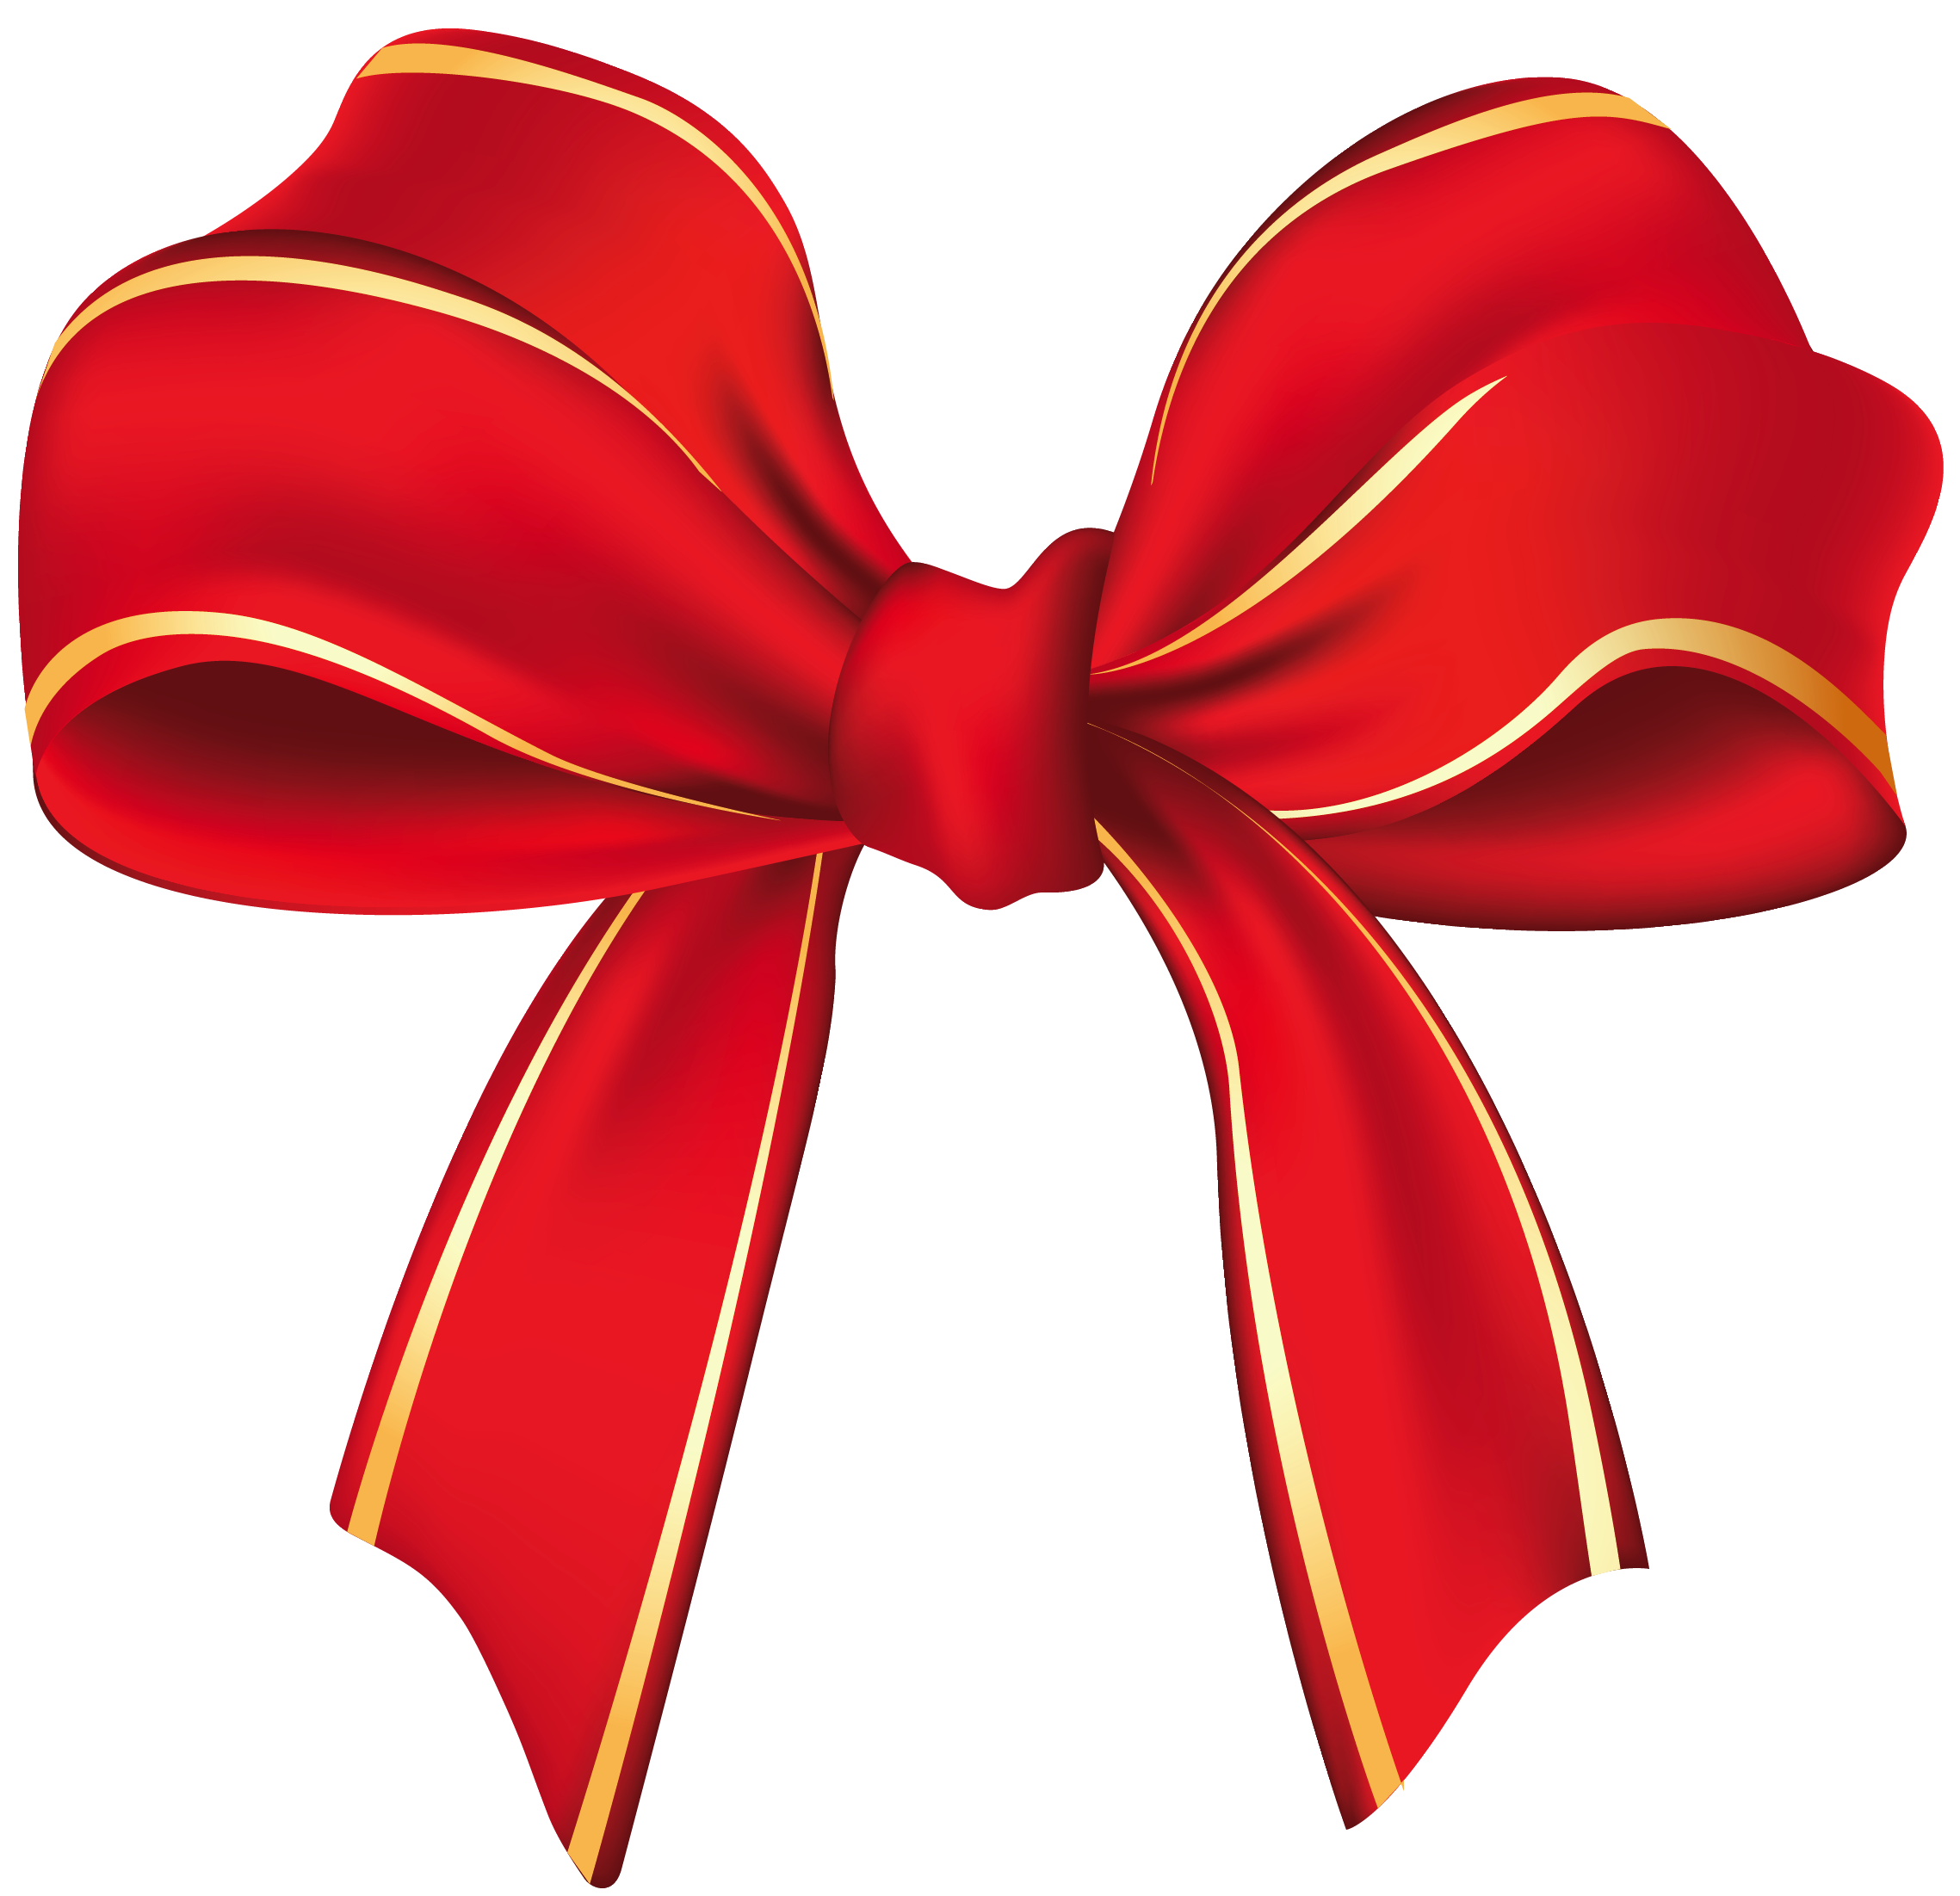 Png Of Bow - Bow PNG images free download, bow PNG